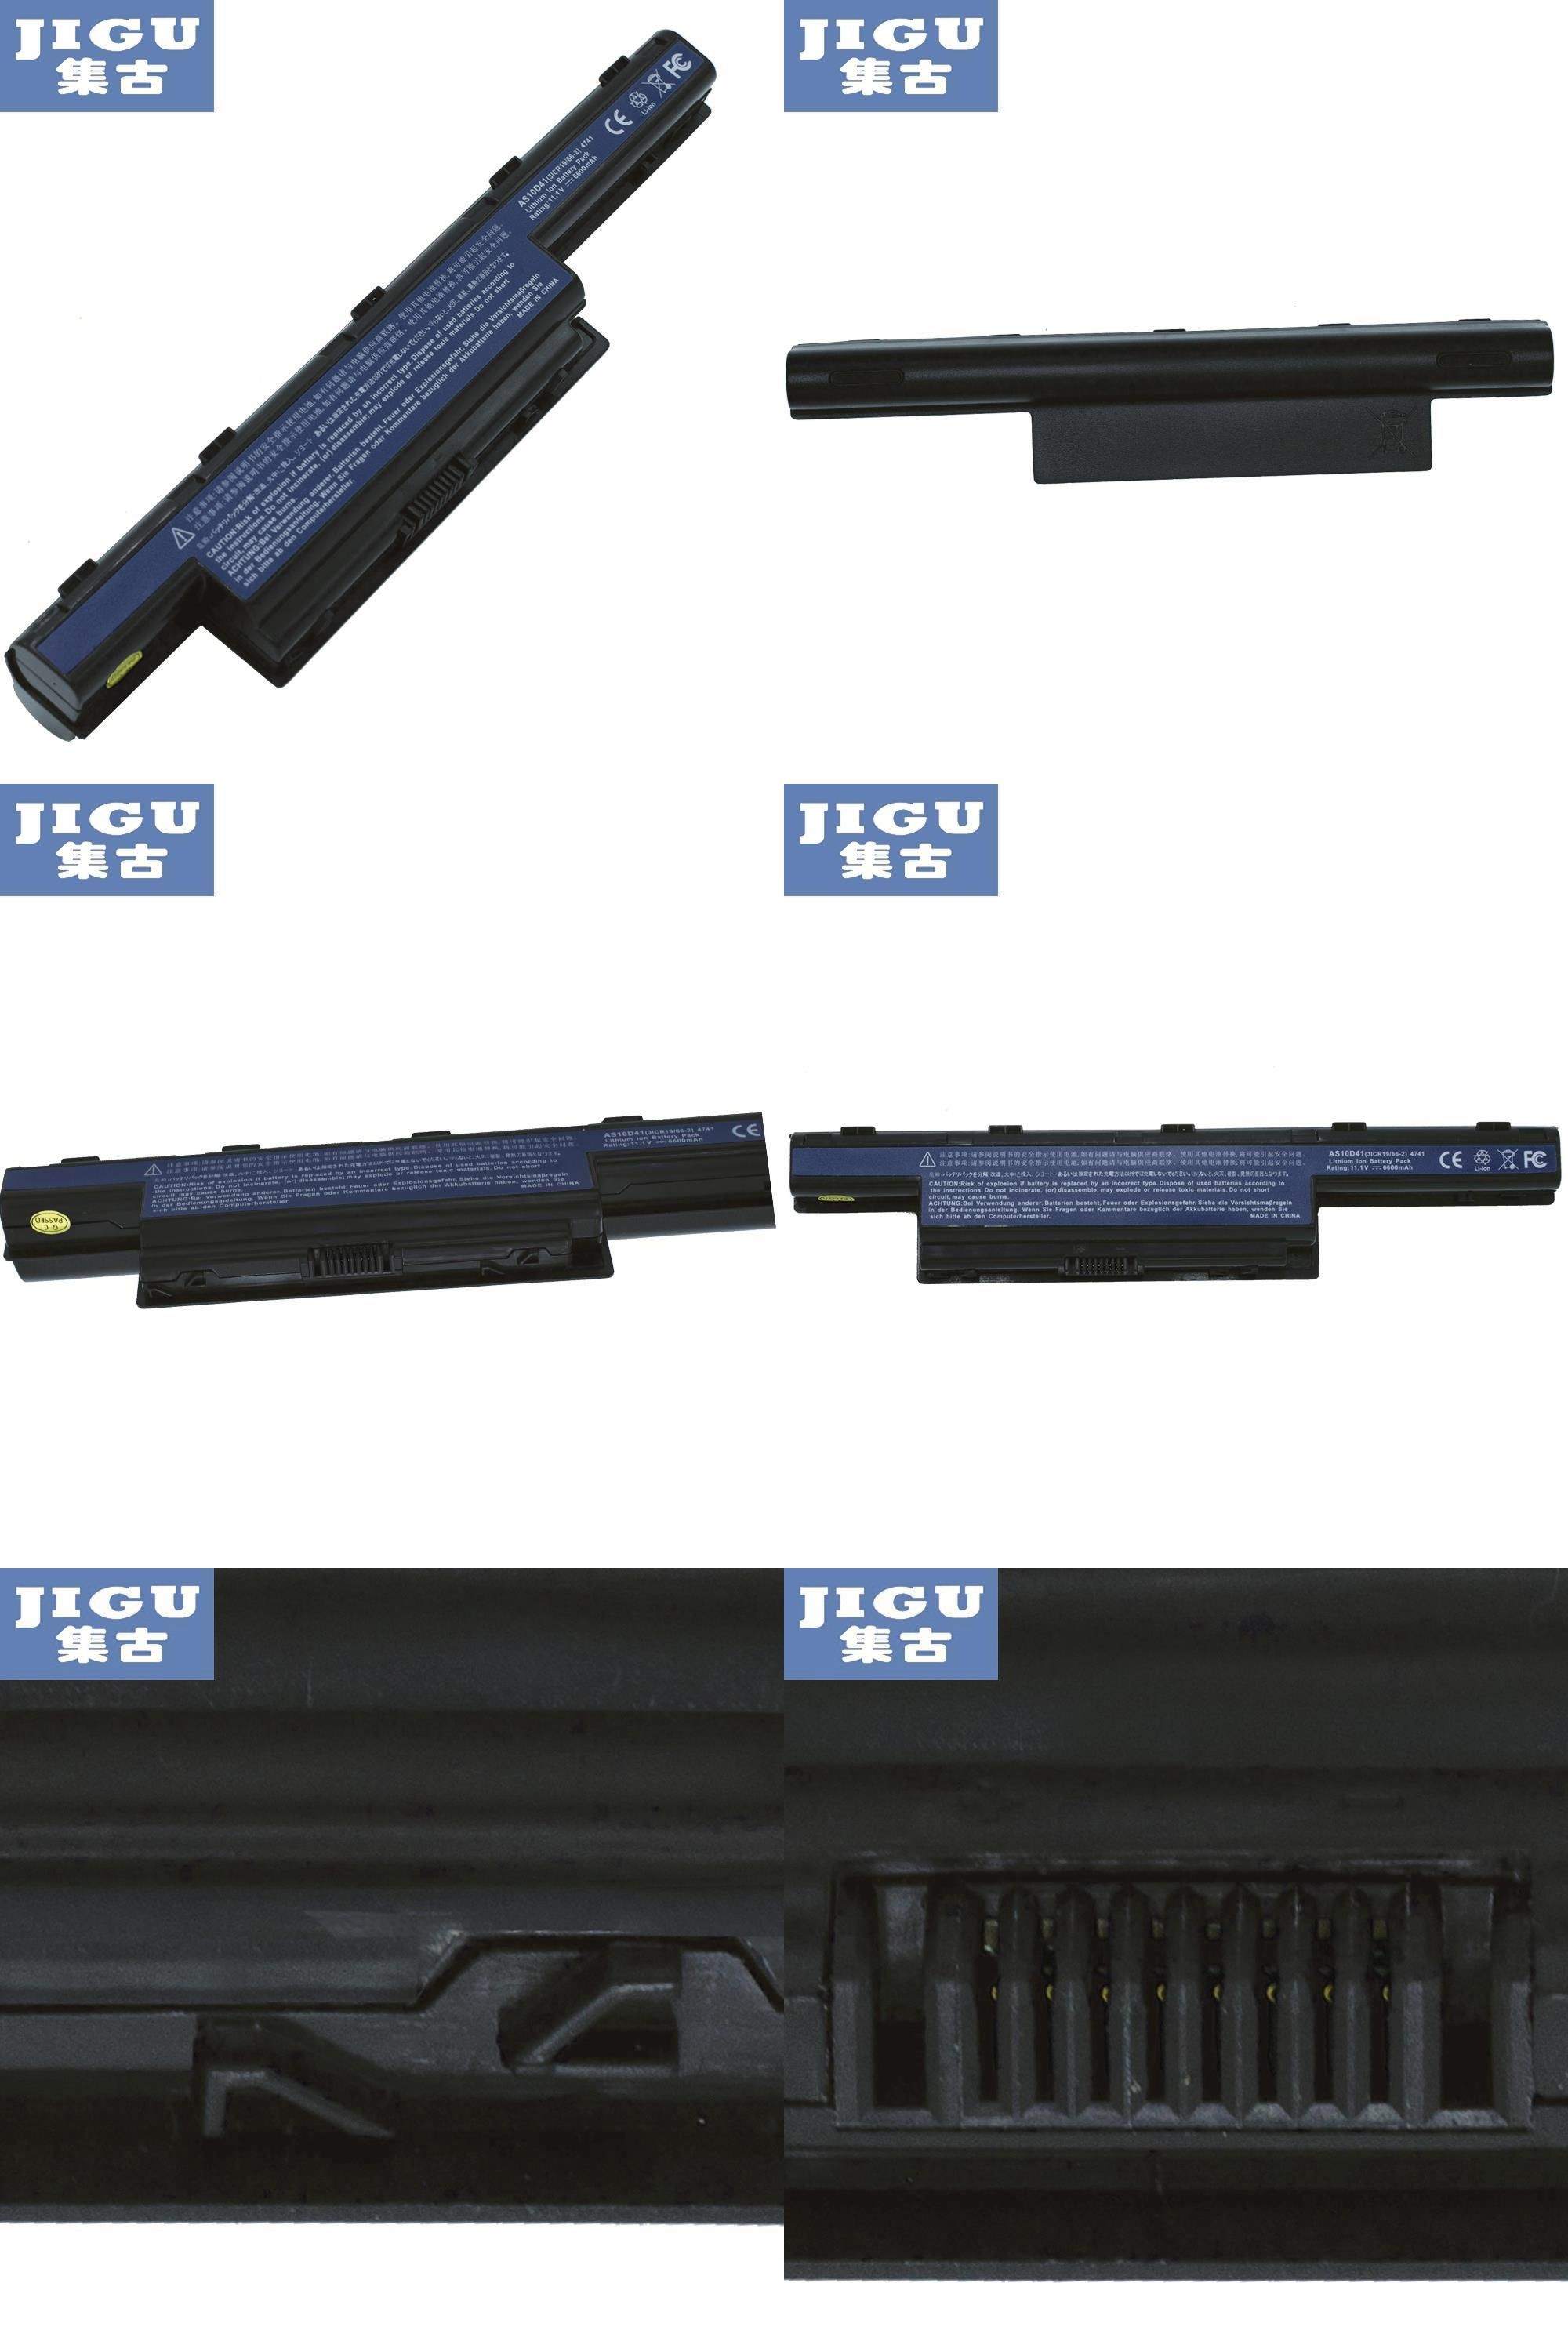 Visit To Buy Jigu Laptop Battery For Acer Aspire V3 V3 471g V3 551 V3 551g V3 571 V3 571g V3 771 V3 771 6683 V3 Laptop Battery Acer Aspire Laptop Accessories